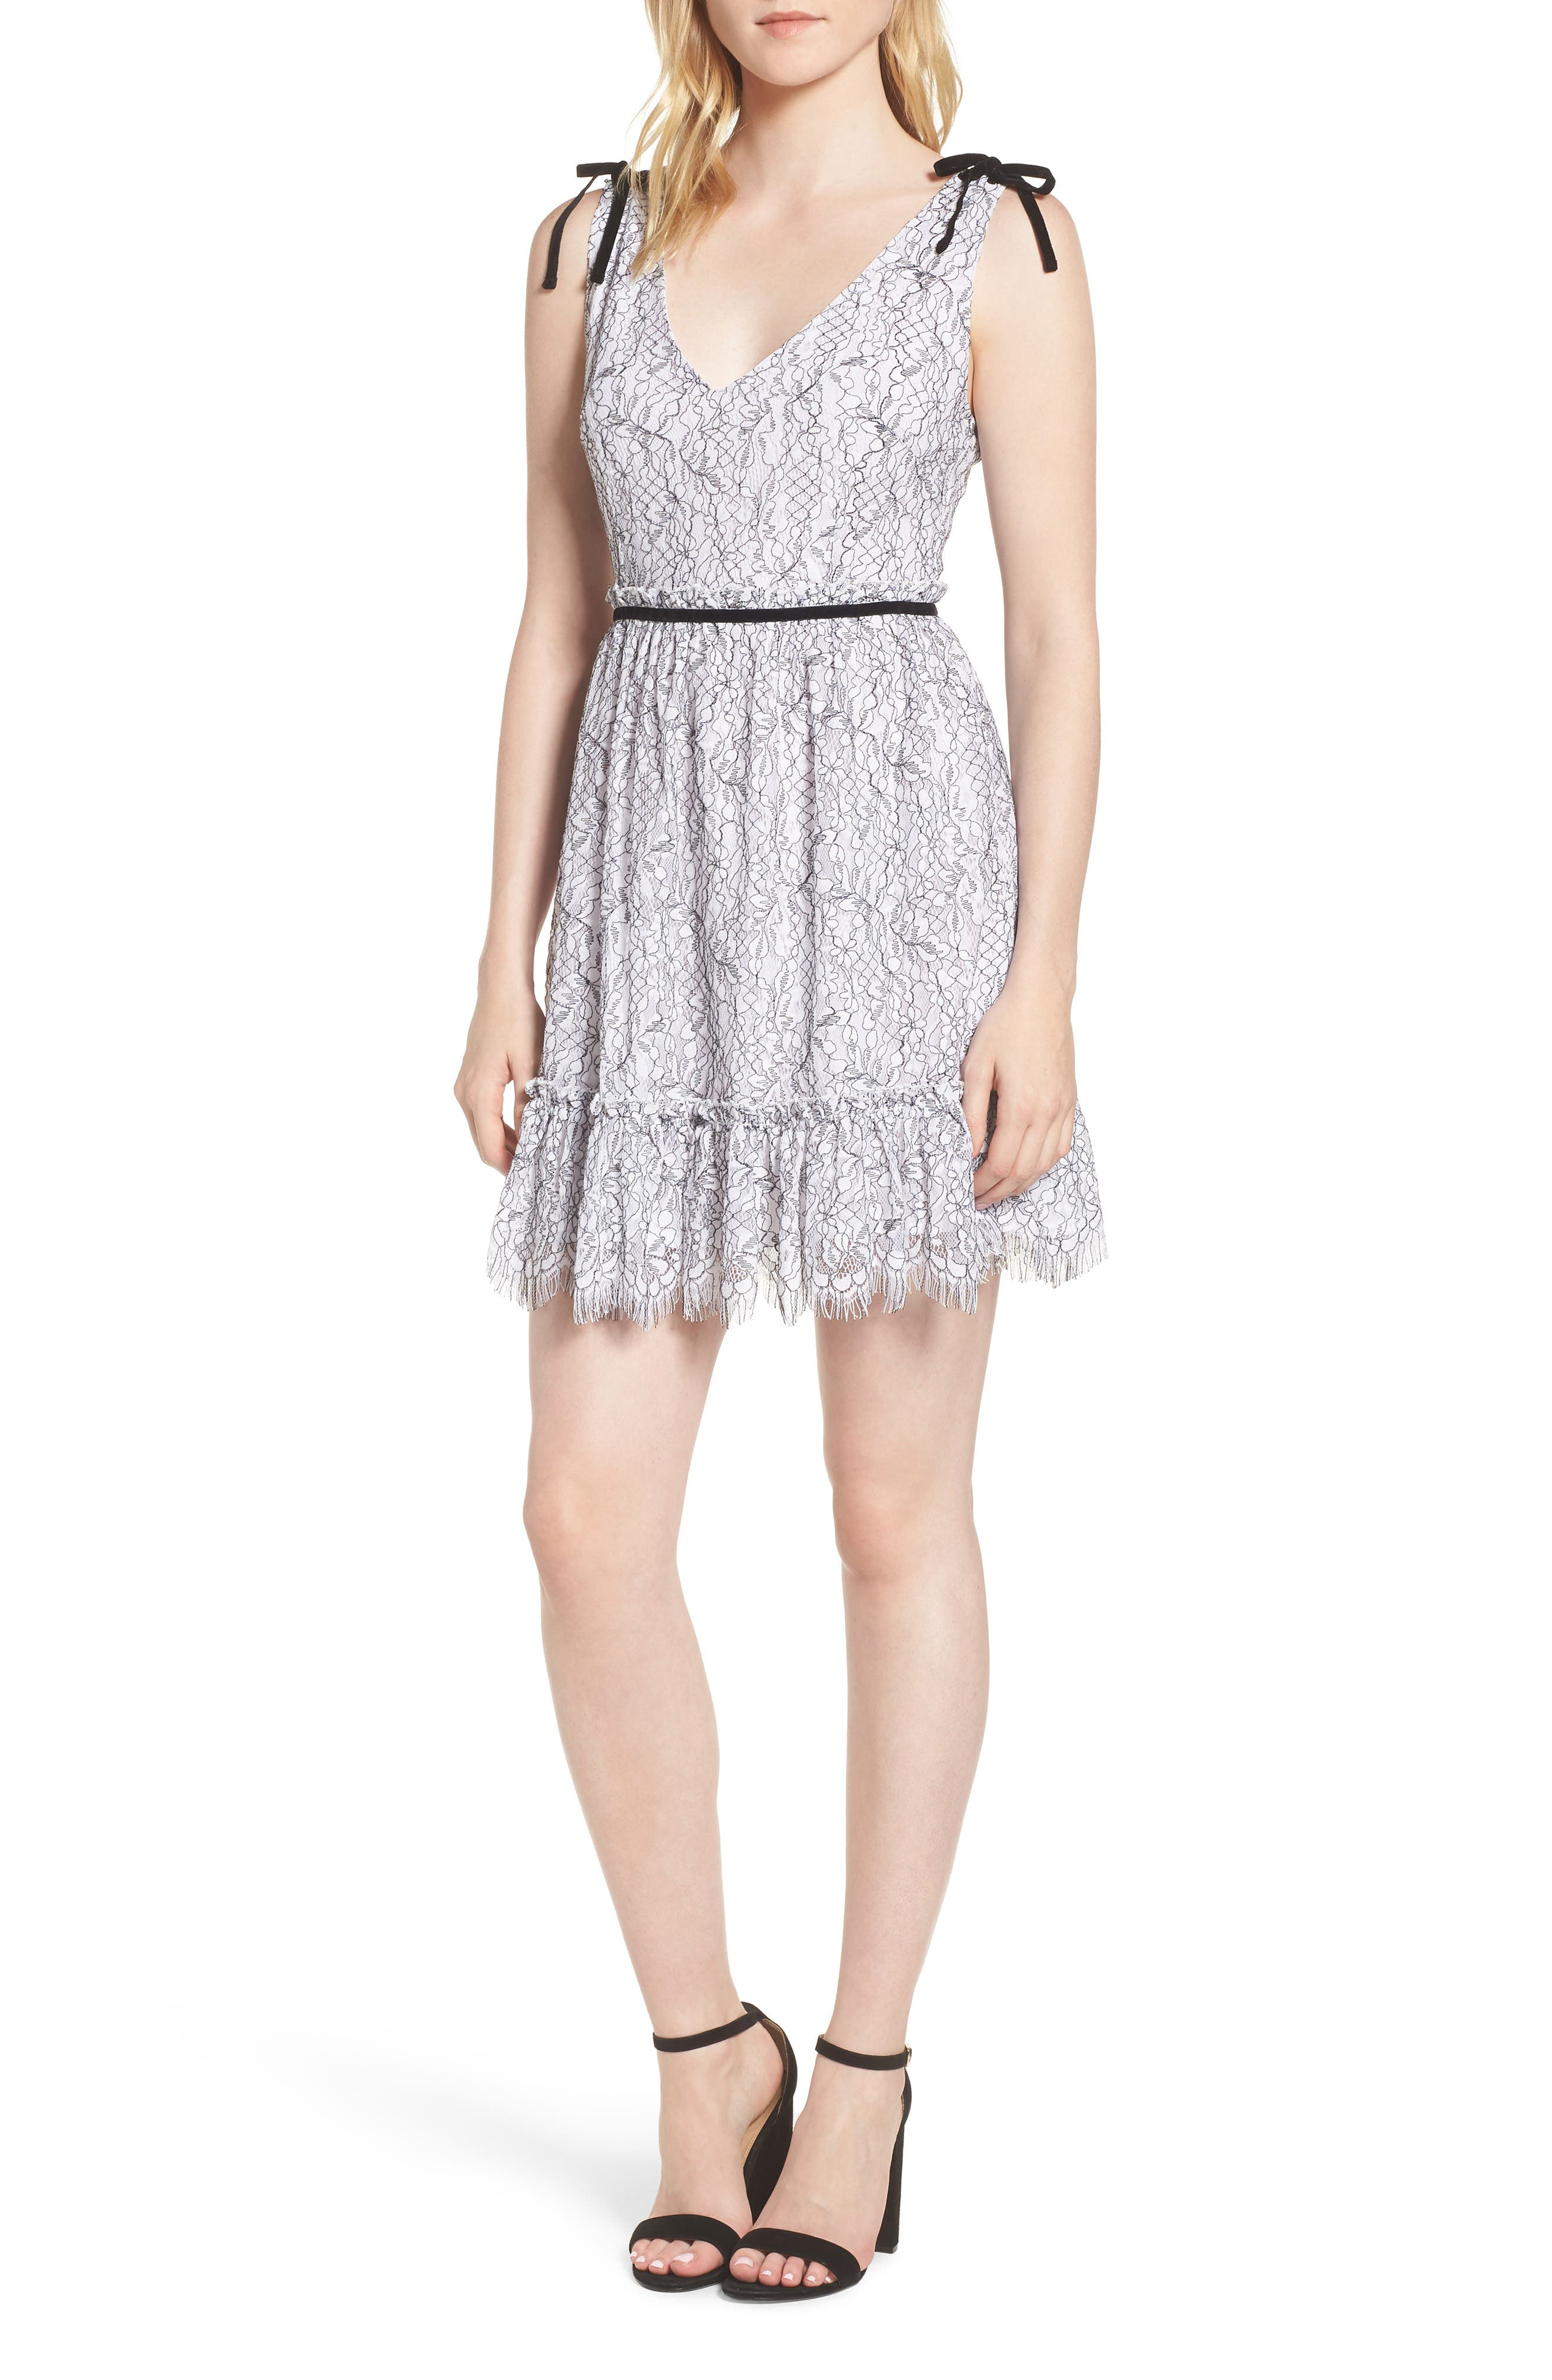 Ezzy Lace Dress,                         Main,                         color, IVORY